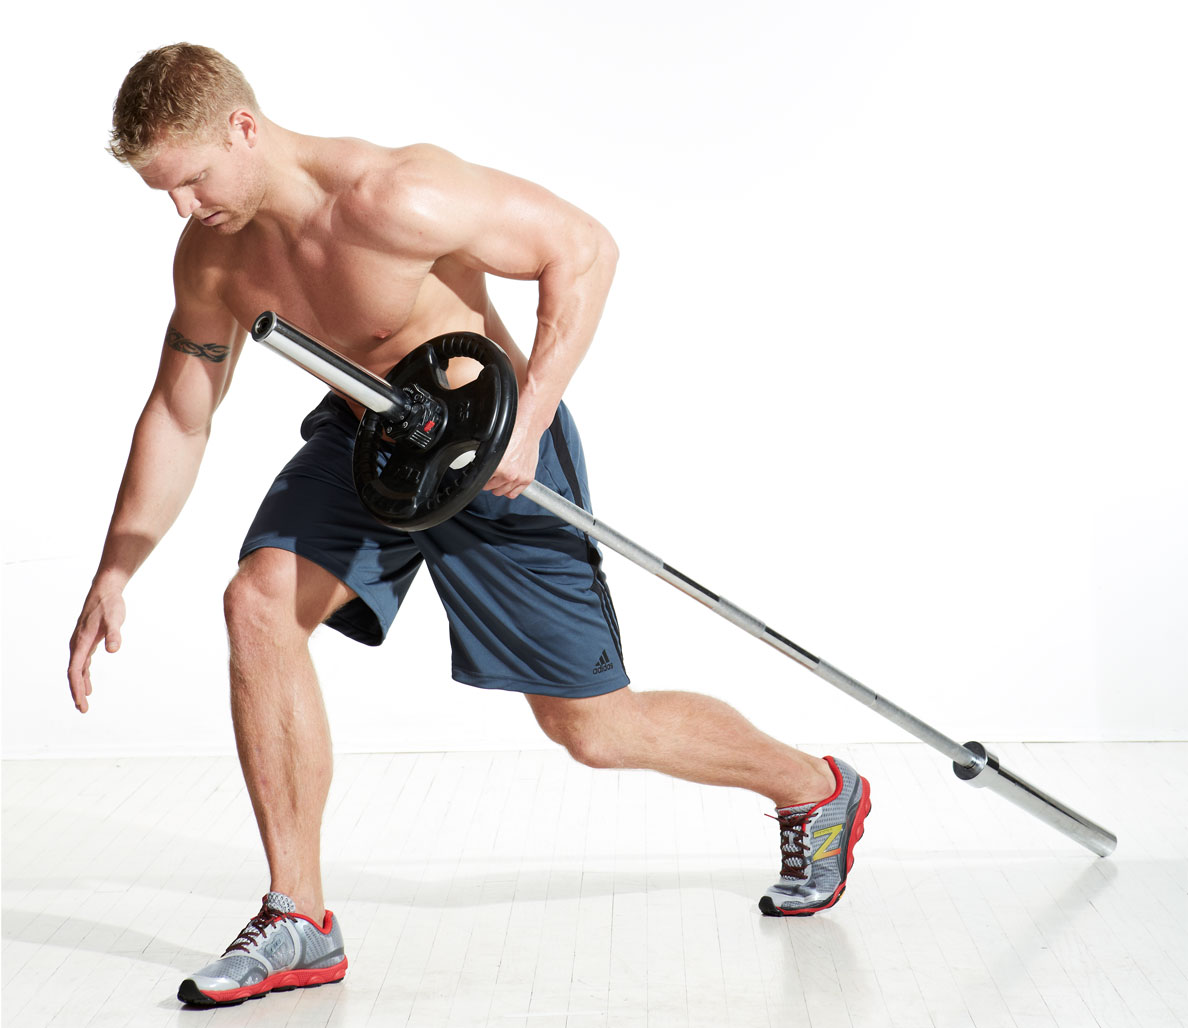 VIDEO: Total-Body With Only a Barbell Workout